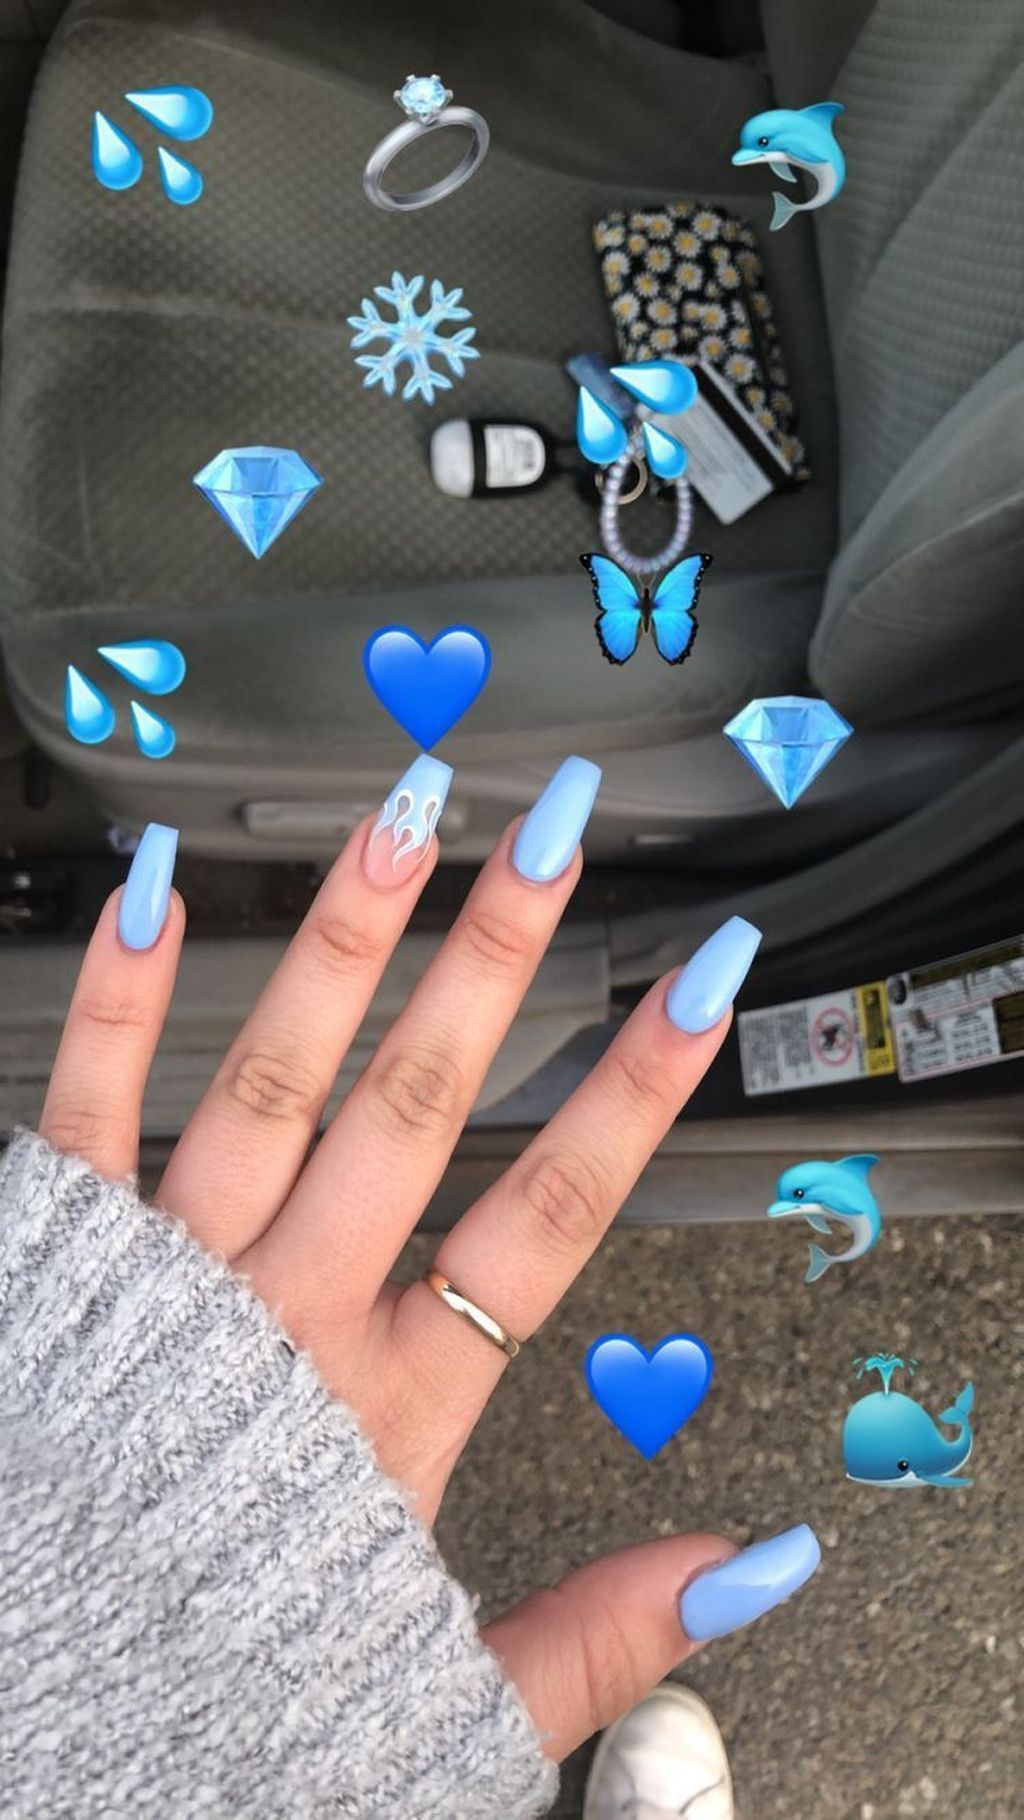 40 Perfect Acrylic Nail Designs Ideas For New Year 2020 In 2020 Nails Design With Rhinestones Blue Acrylic Nails Pretty Acrylic Nails